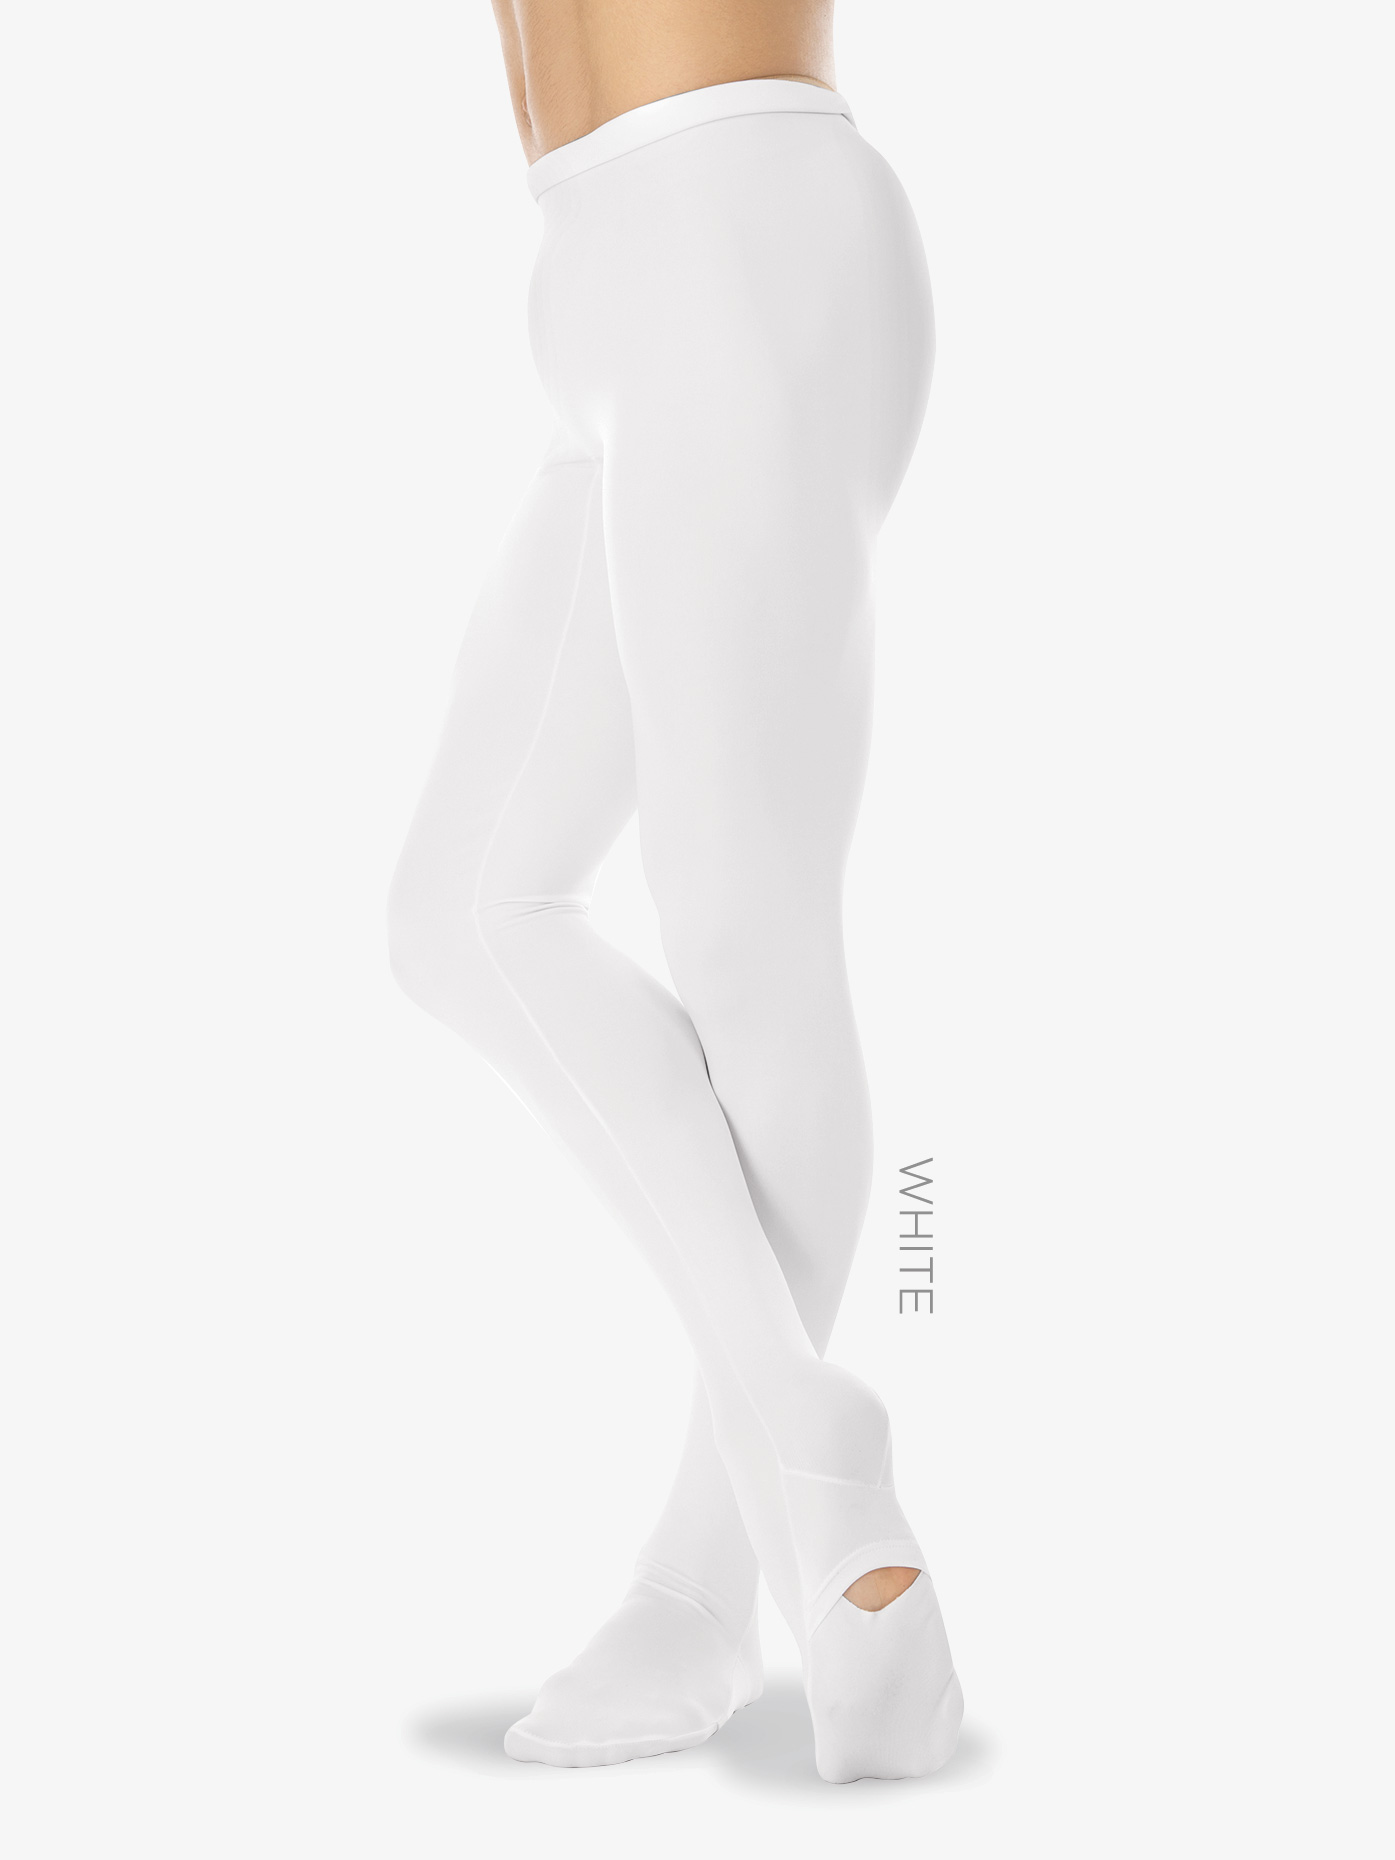 5ac3d84382573 Seamless Convertible Tights | Body Wrappers M92 | DiscountDance.com